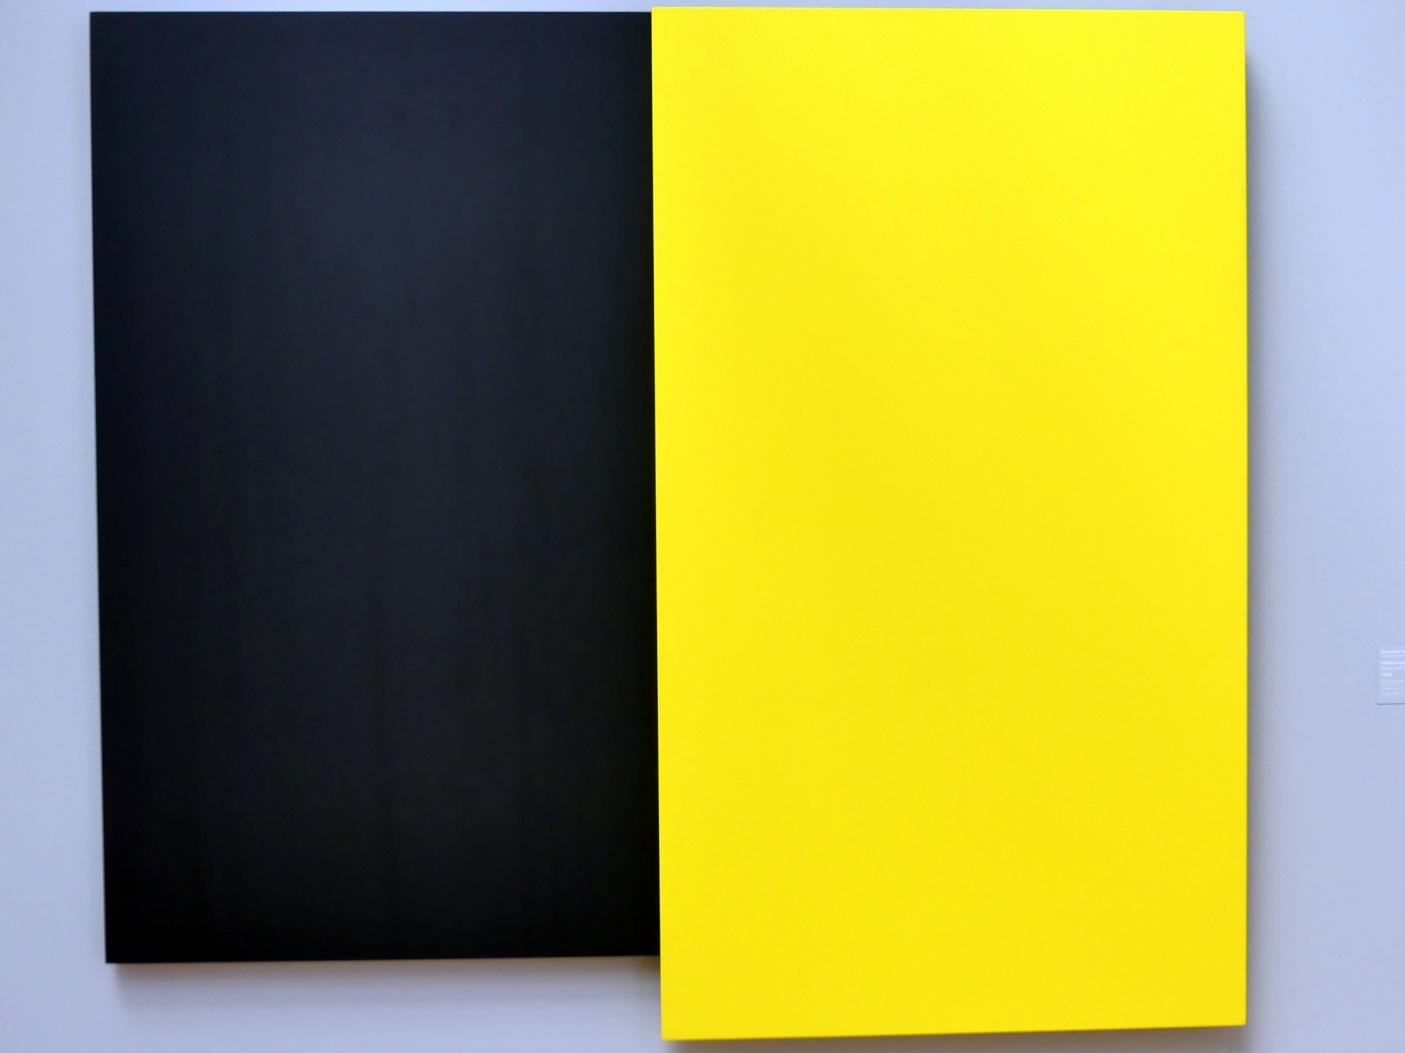 Ellsworth Kelly: Yellow on Black - Gelb auf Schwarz, 2001